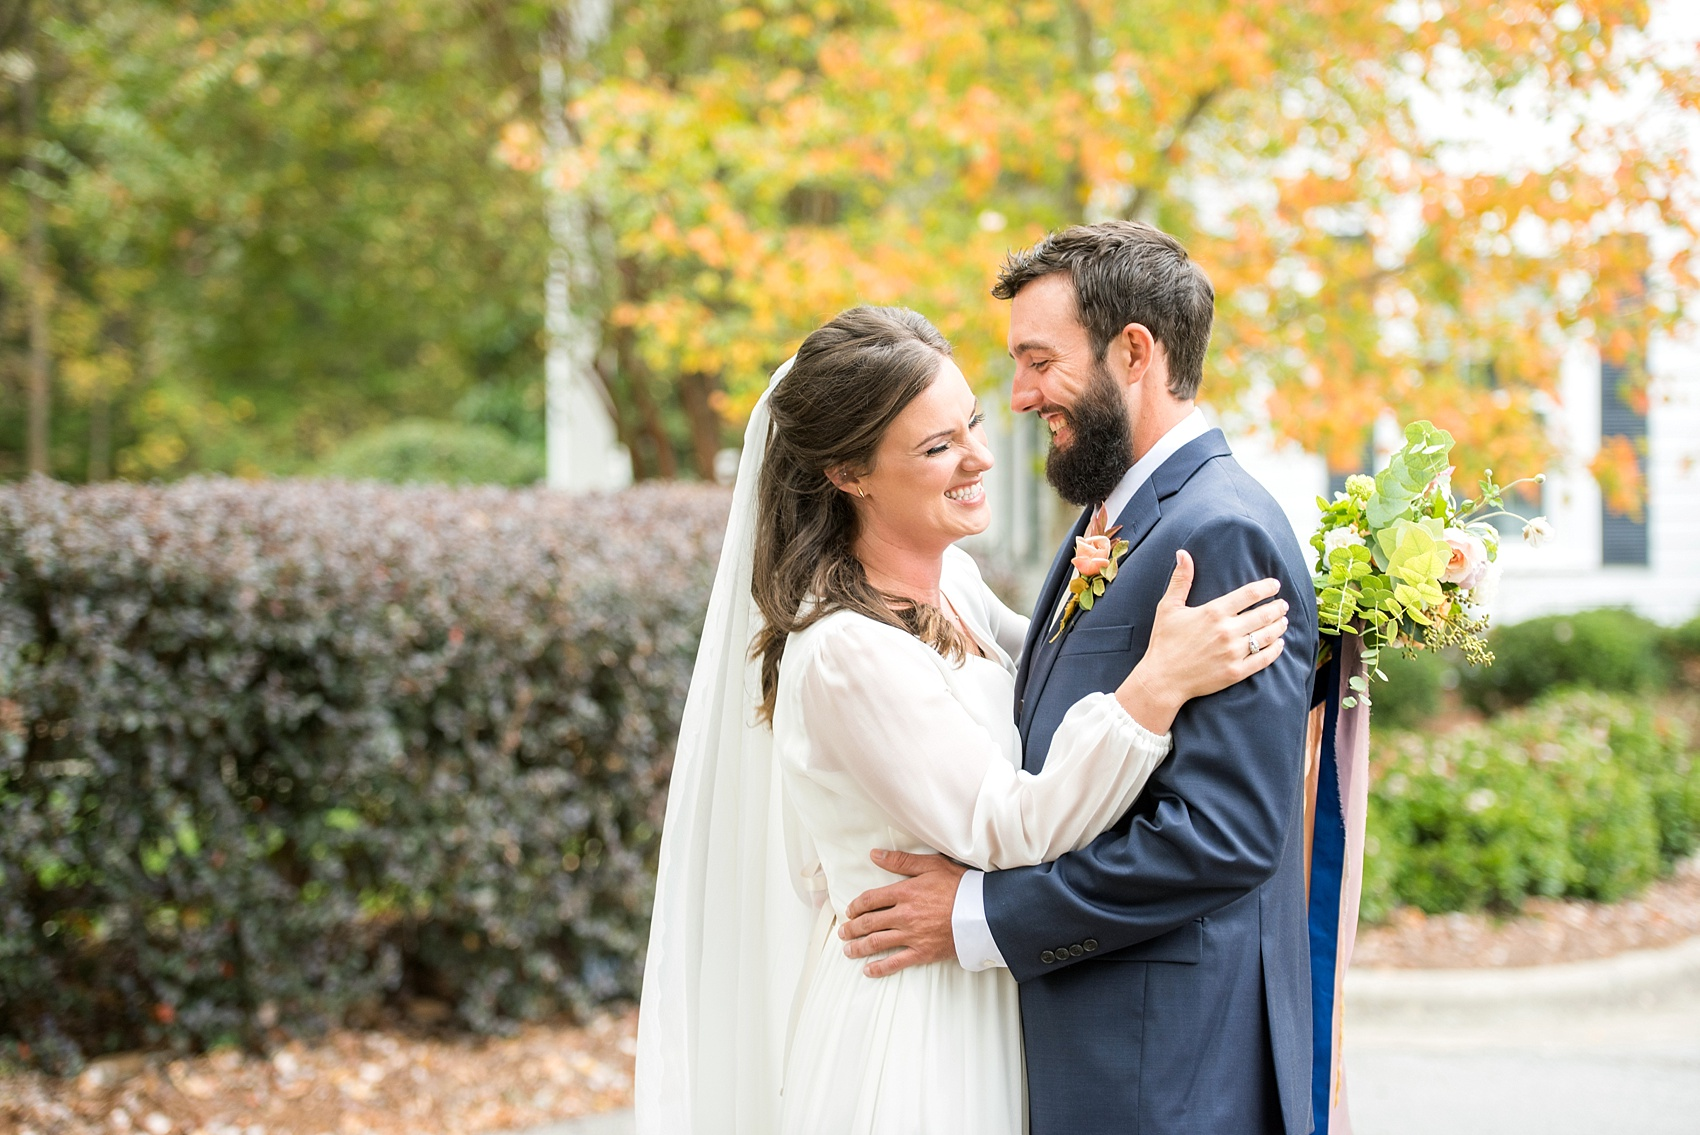 Mikkel Paige Photography photos from a wedding at Leslie-Alford Mims House in North Carolina. Picture of the Boho bride and groom in a navy suit for their fall day.